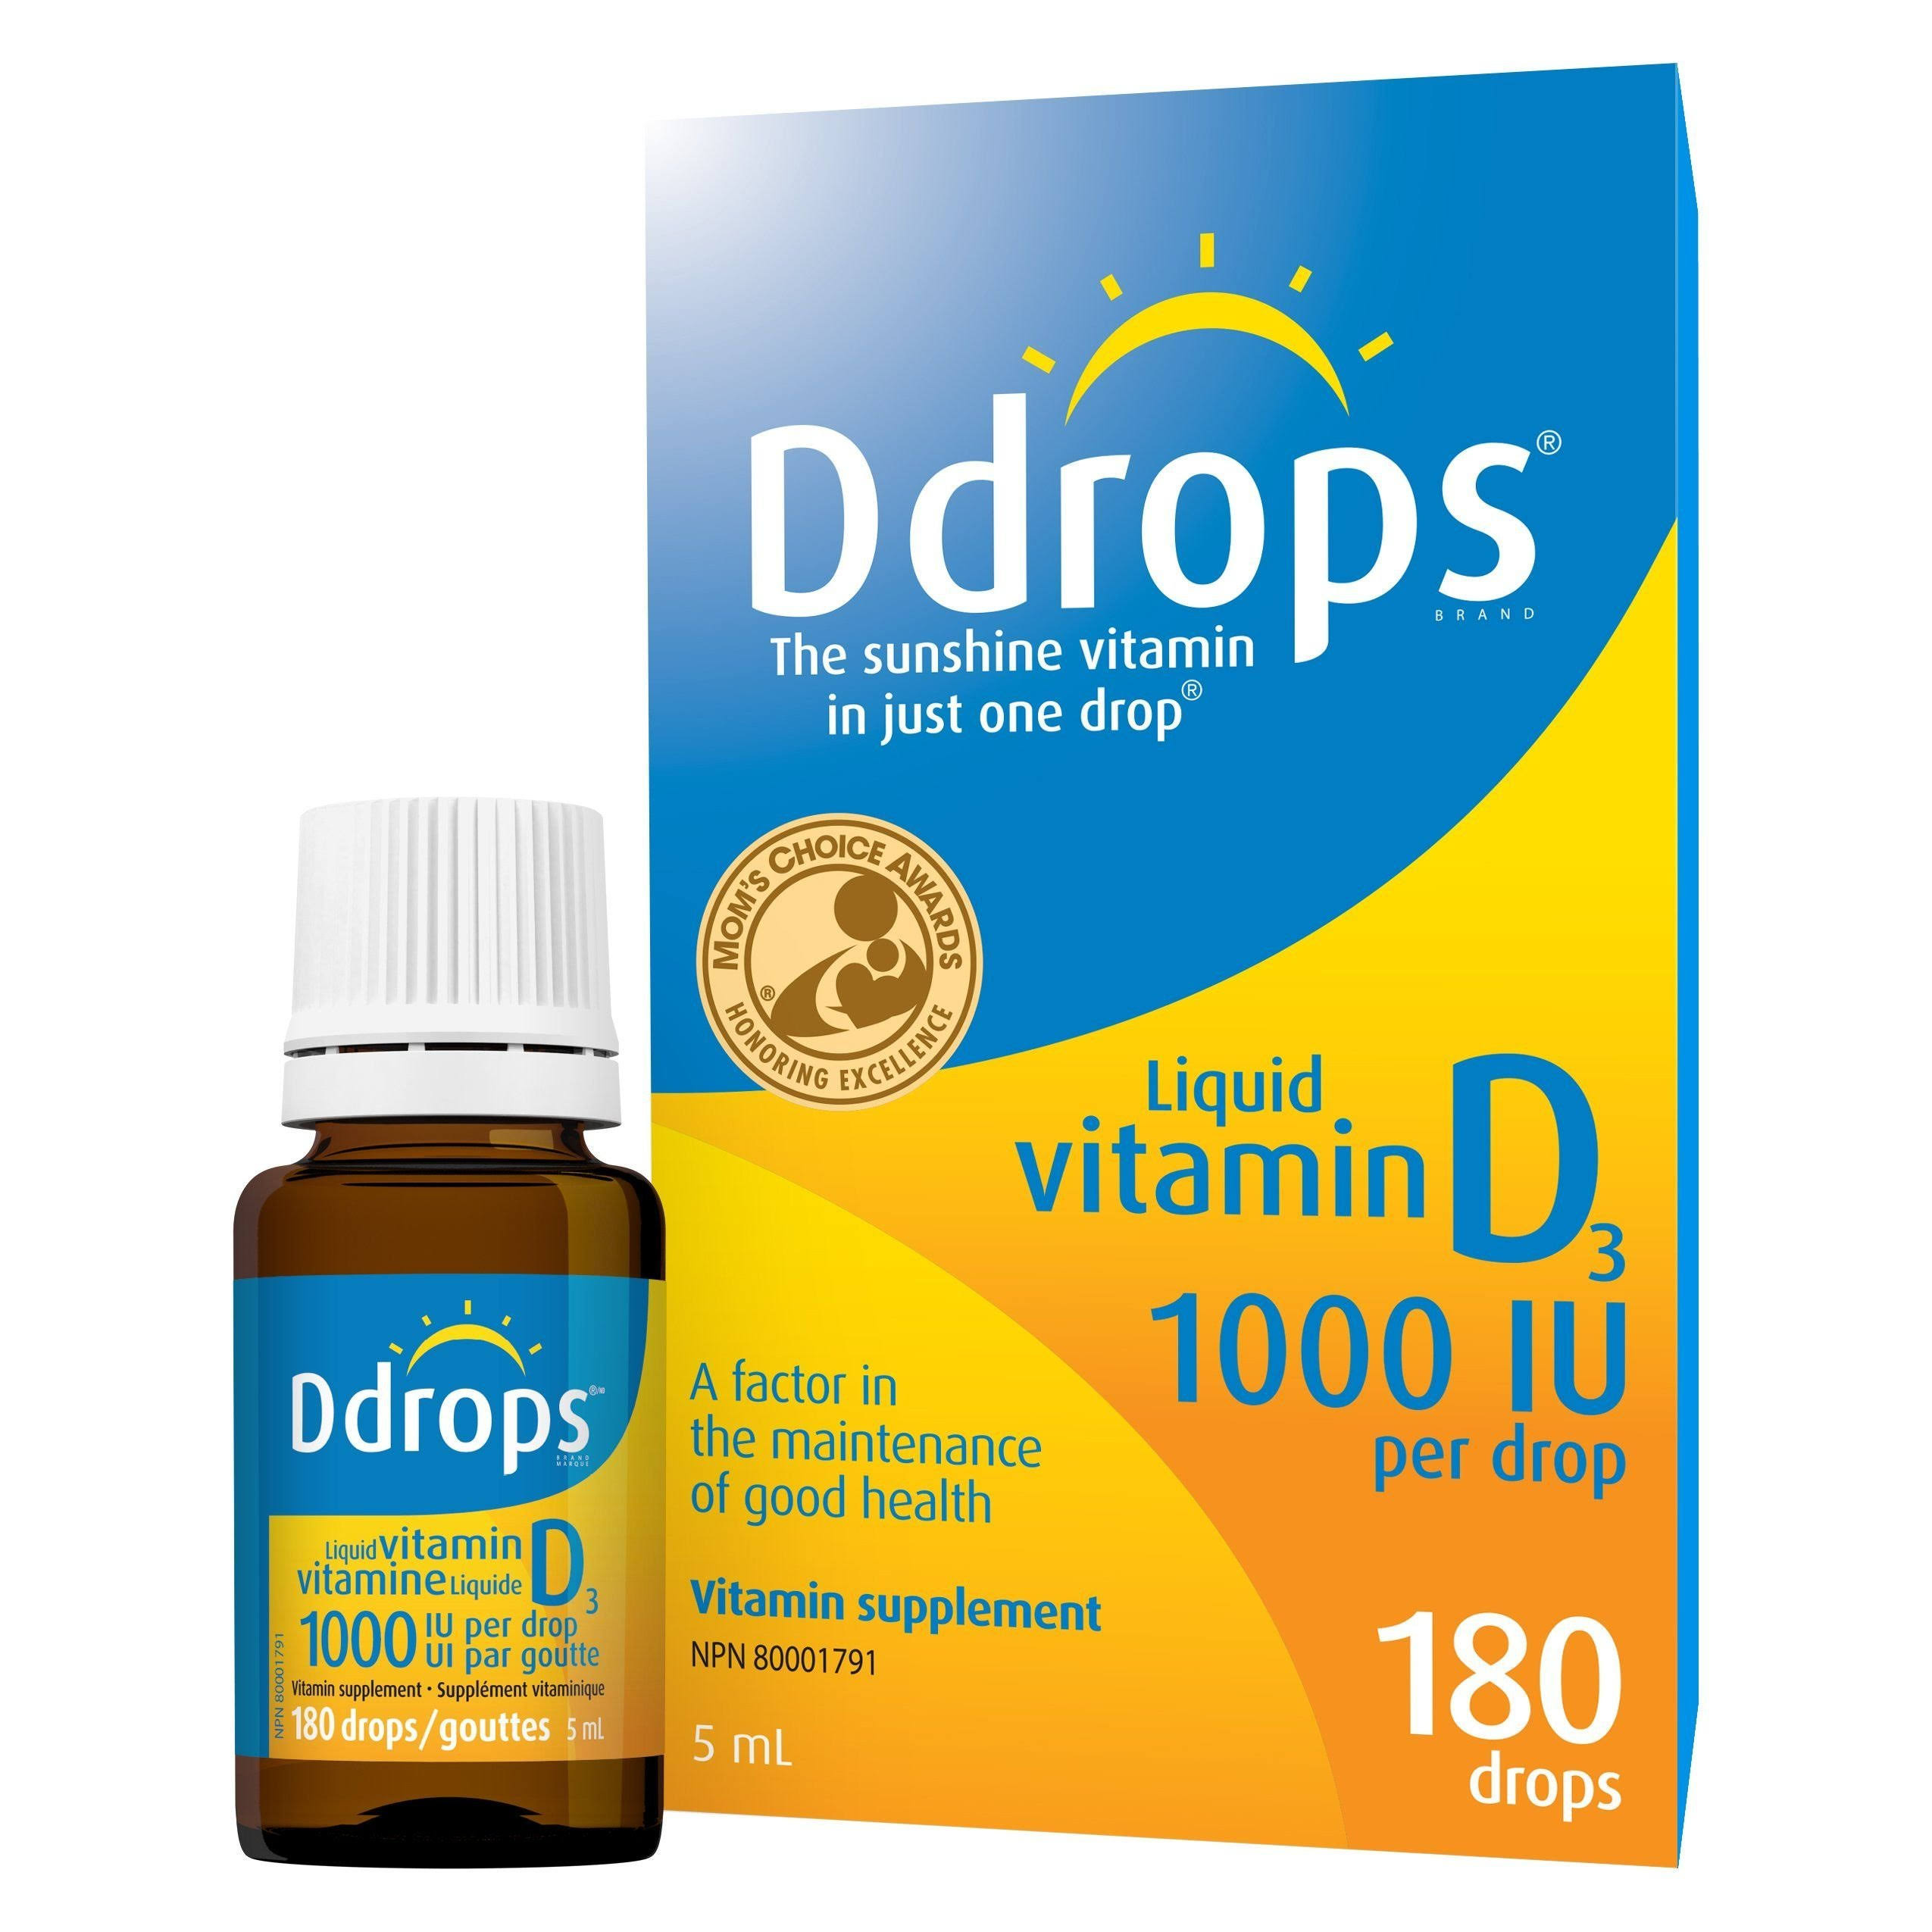 Ddrops Vitamin D Liquid - 1000 UI, 180 Drops, 5ml